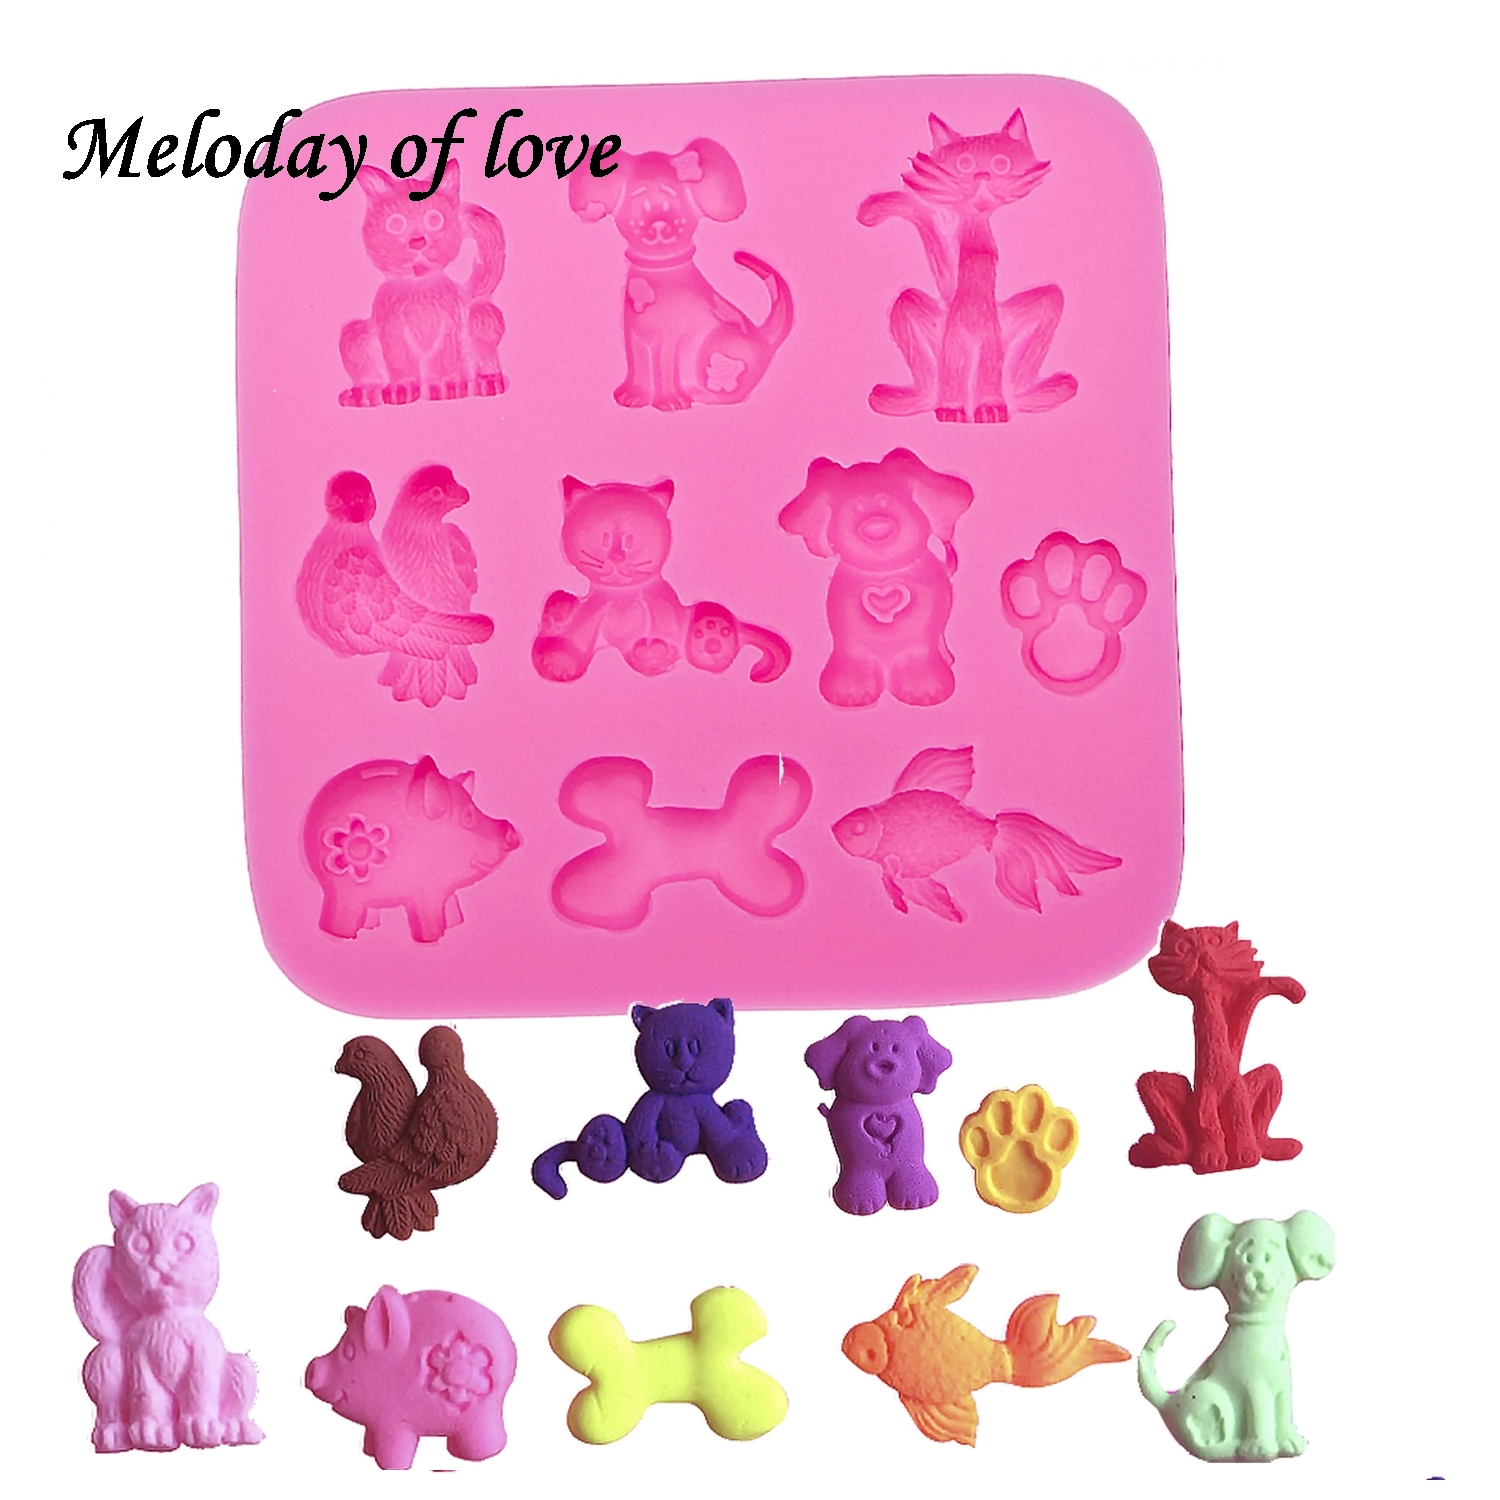 Cooperative 3d Animal Pig Dog Bones Goldfish Chocolate Cake Decorating Tools Diy Baking Fondant Silicone Mold Clay Resin Sugar Candy T0031 Clay Extruders Pottery & Ceramics